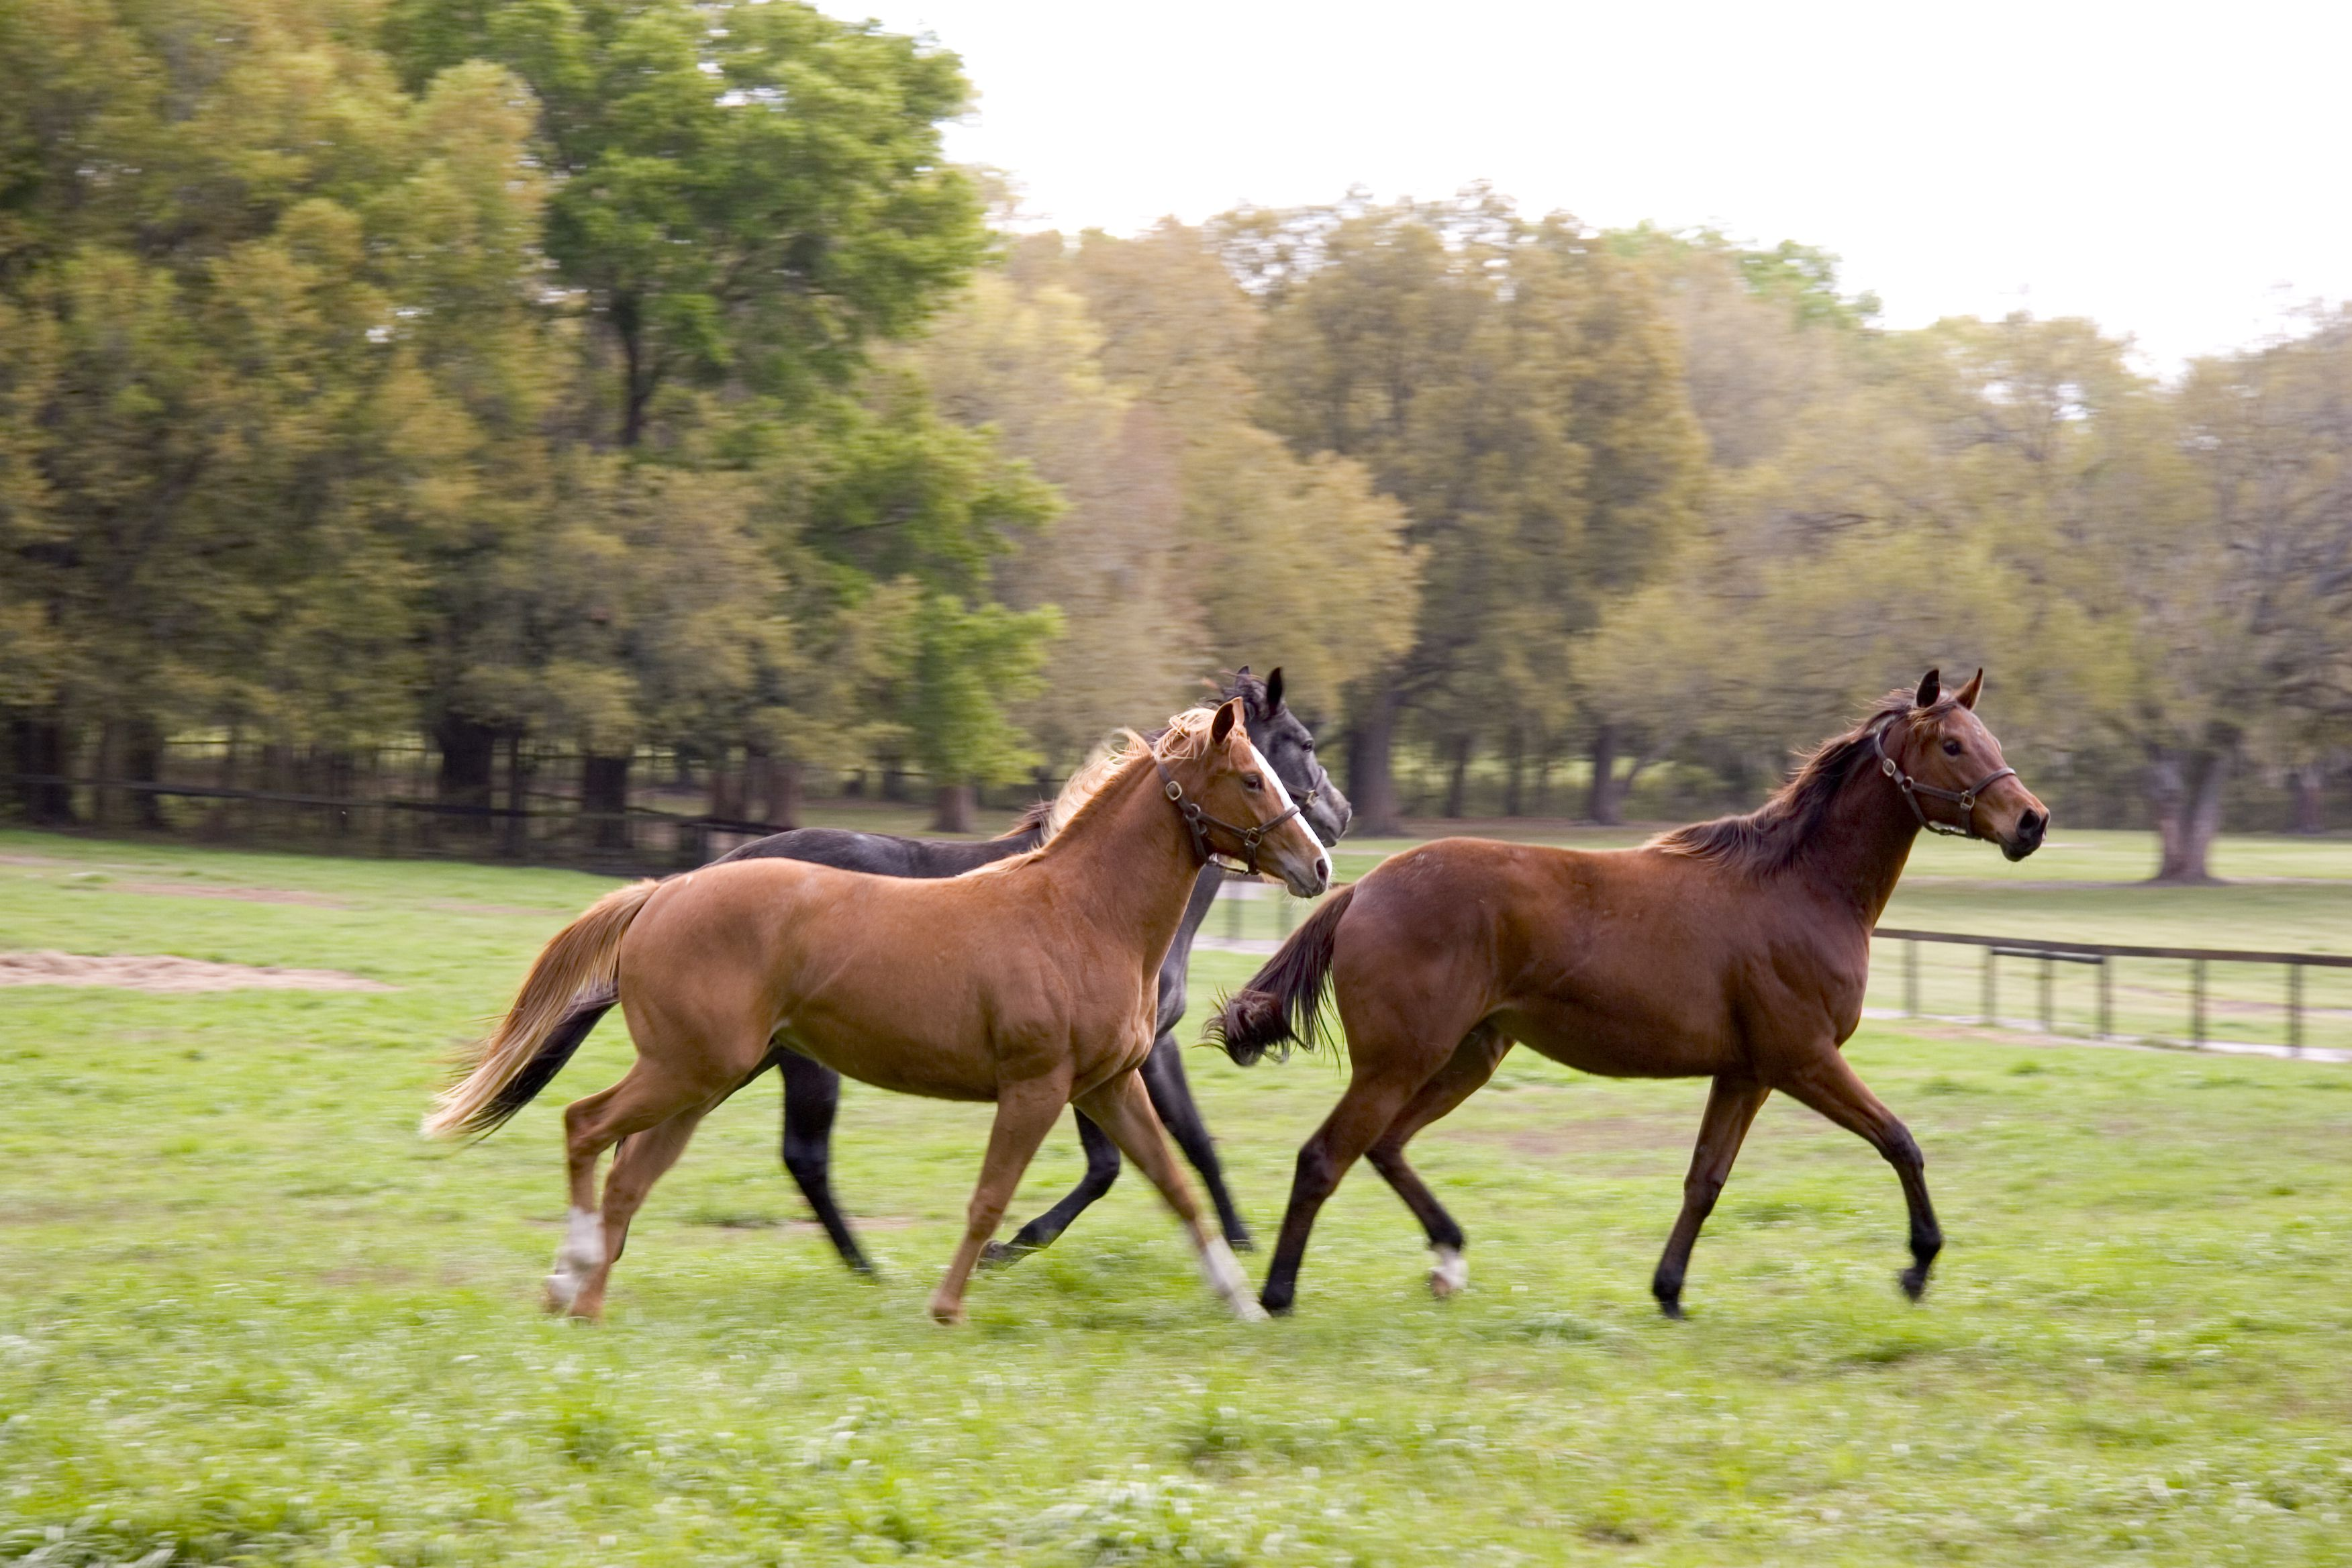 Three horses running on a field at a farm in front of trees